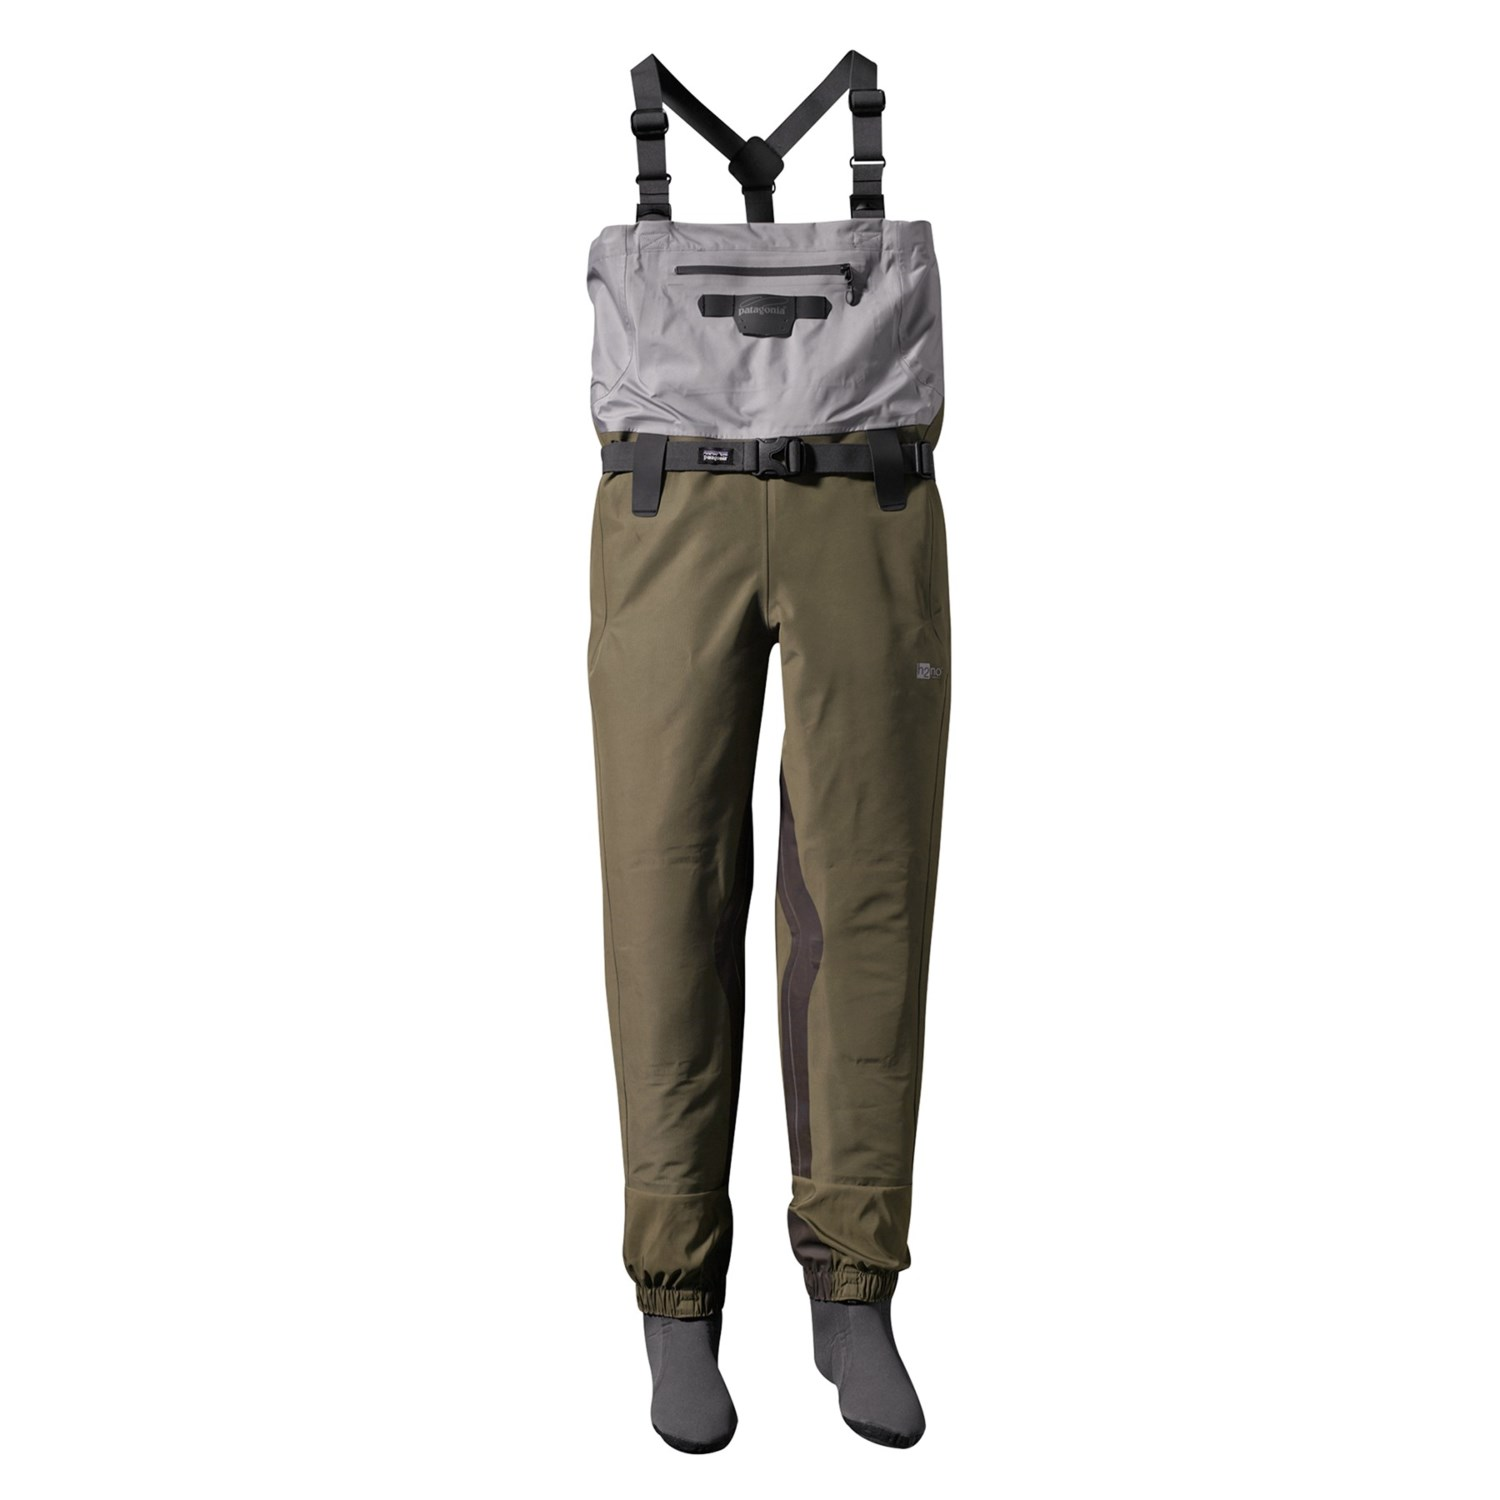 Brand new patagonia rio gallegos men 39 s fly fishing waders for Fly fishing waders